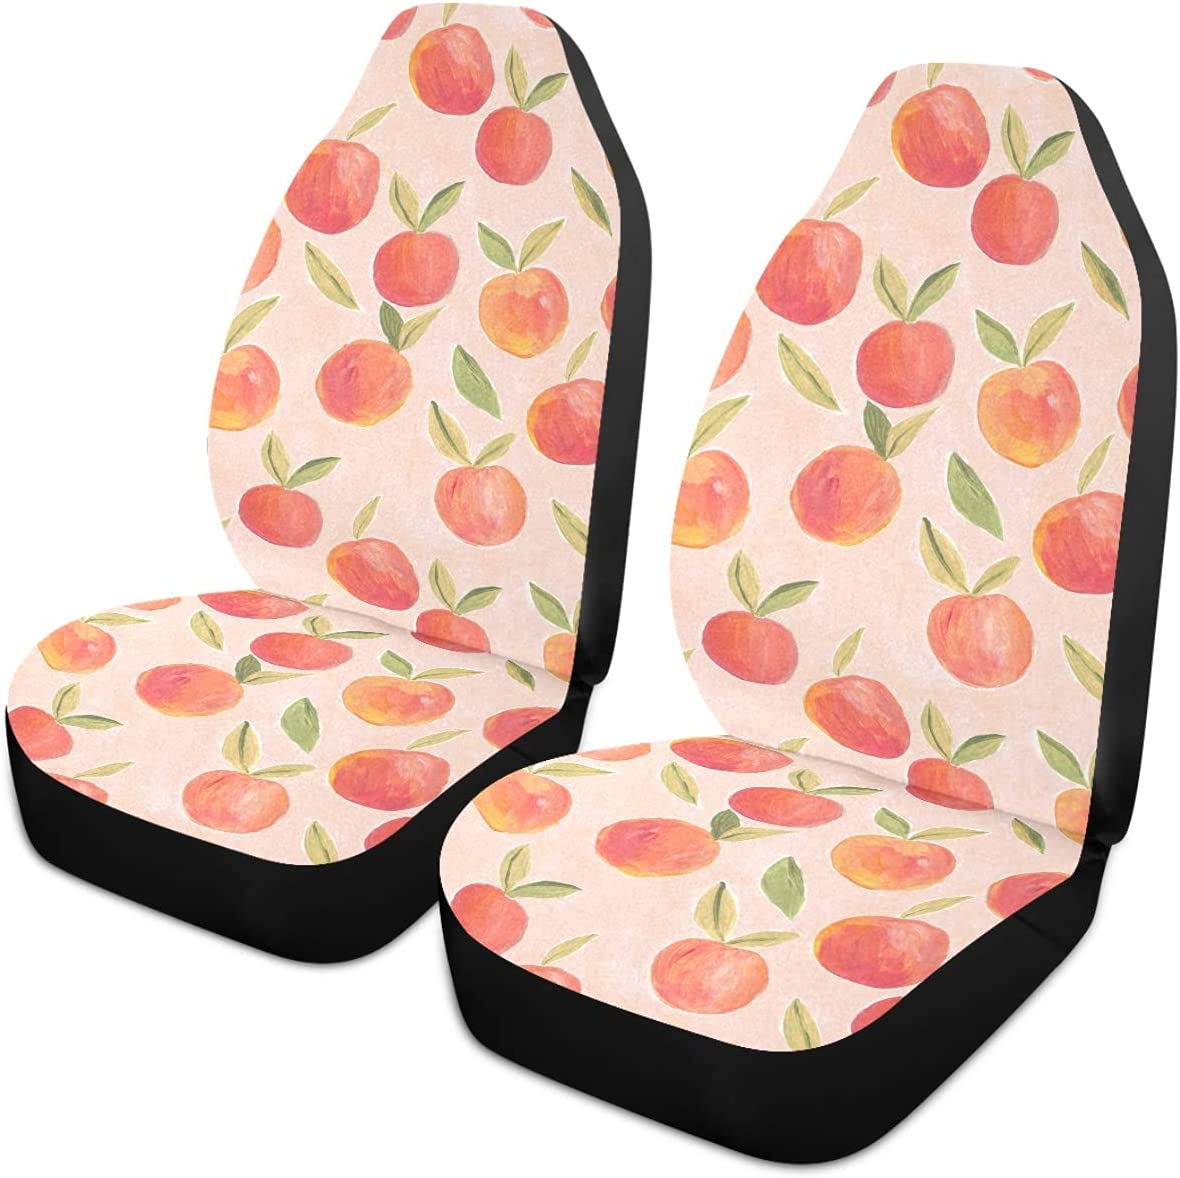 Oarencol Pink Peaches Fruit Car Auto Seat Universal Covers Front Max 62% OFF Free shipping on posting reviews